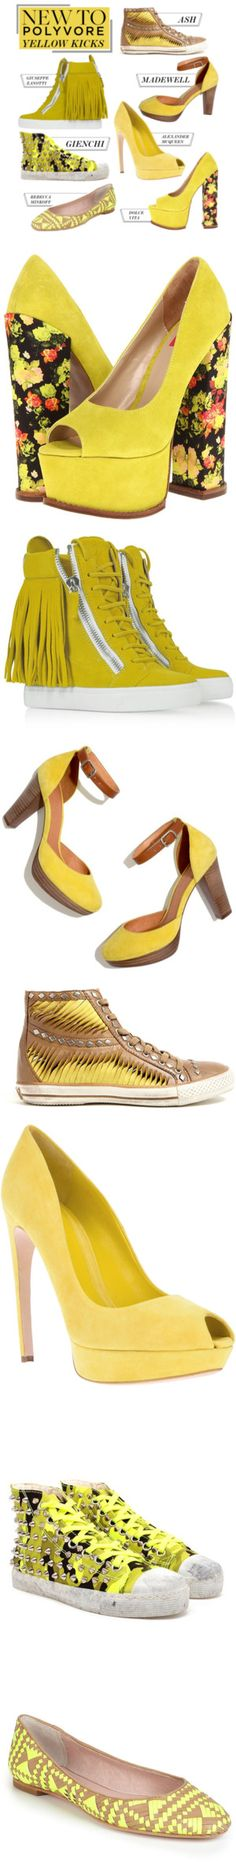 """""""New to Polyvore: 7 Yellow Kicks Worth Wearing"""" by polyvore-editorial ❤ liked on Polyvore"""